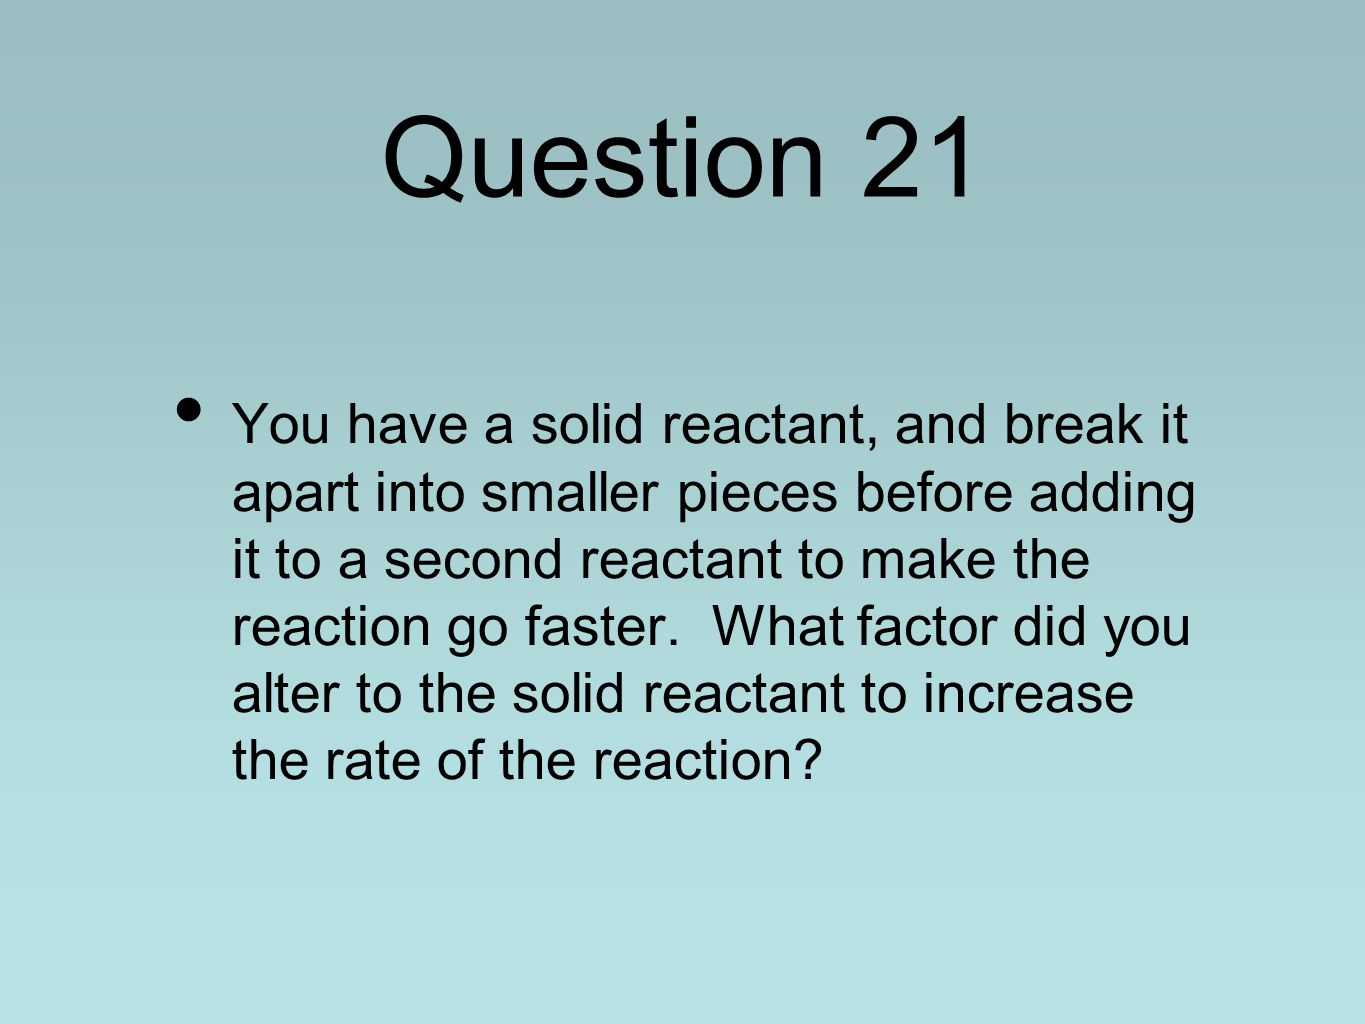 Question 21 You have a solid reactant, and break it apart into smaller pieces before adding it to a second reactant to make the reaction go faster.